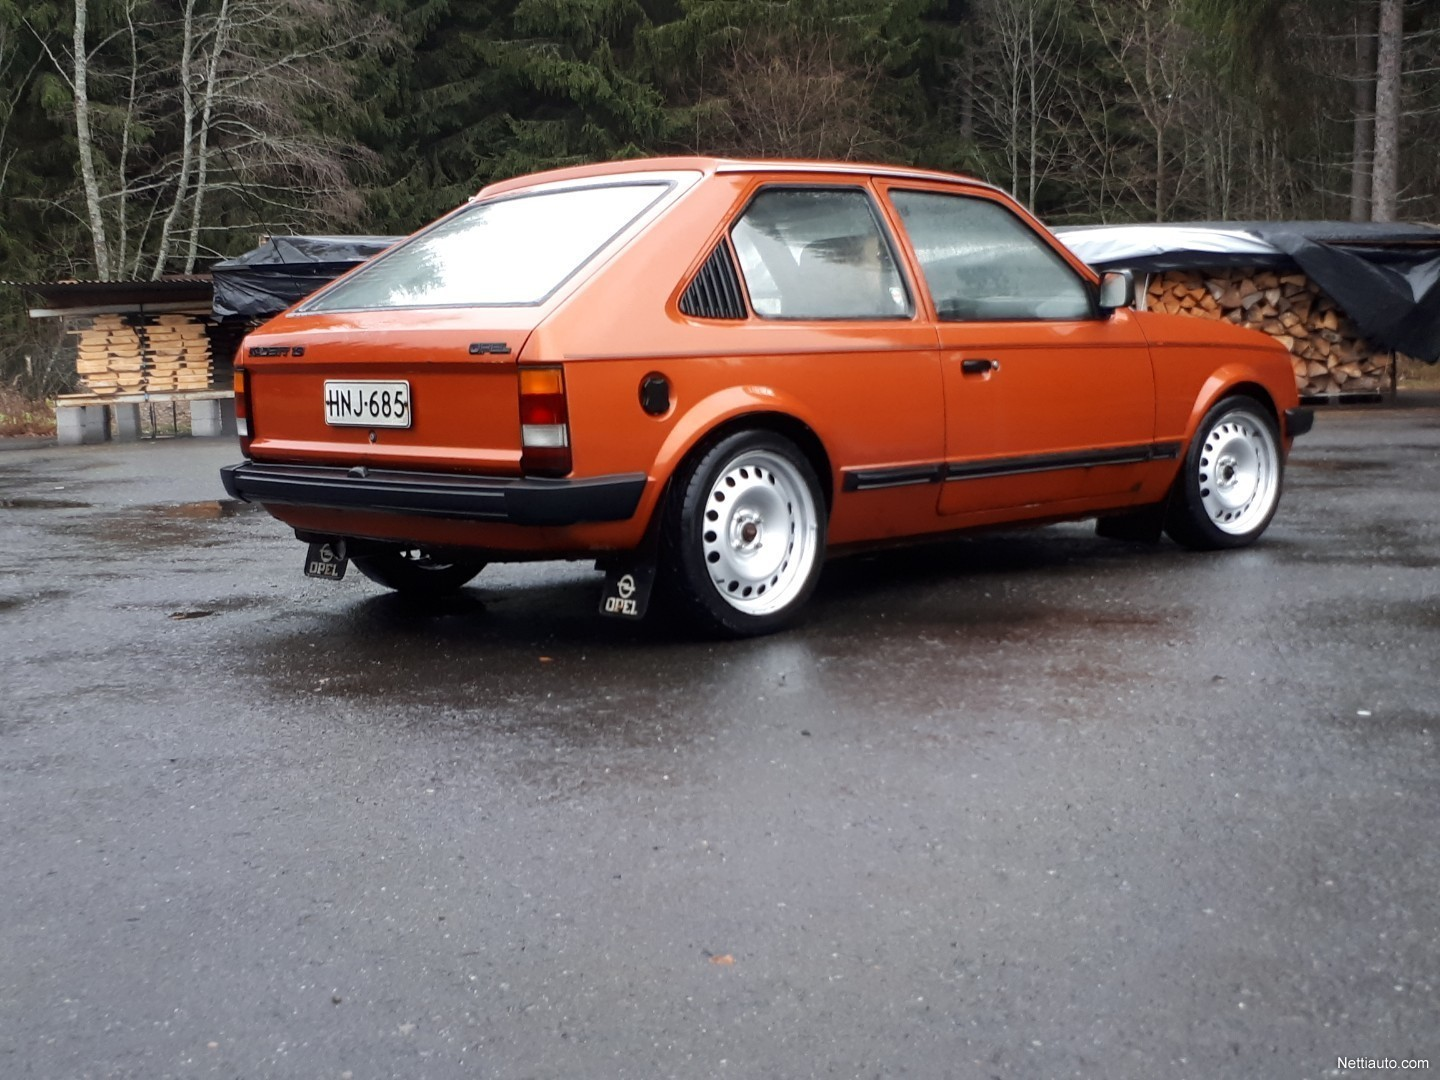 Opel Kadett Kadett D 2 0 Hatchback 1981 Used Vehicle Nettiauto